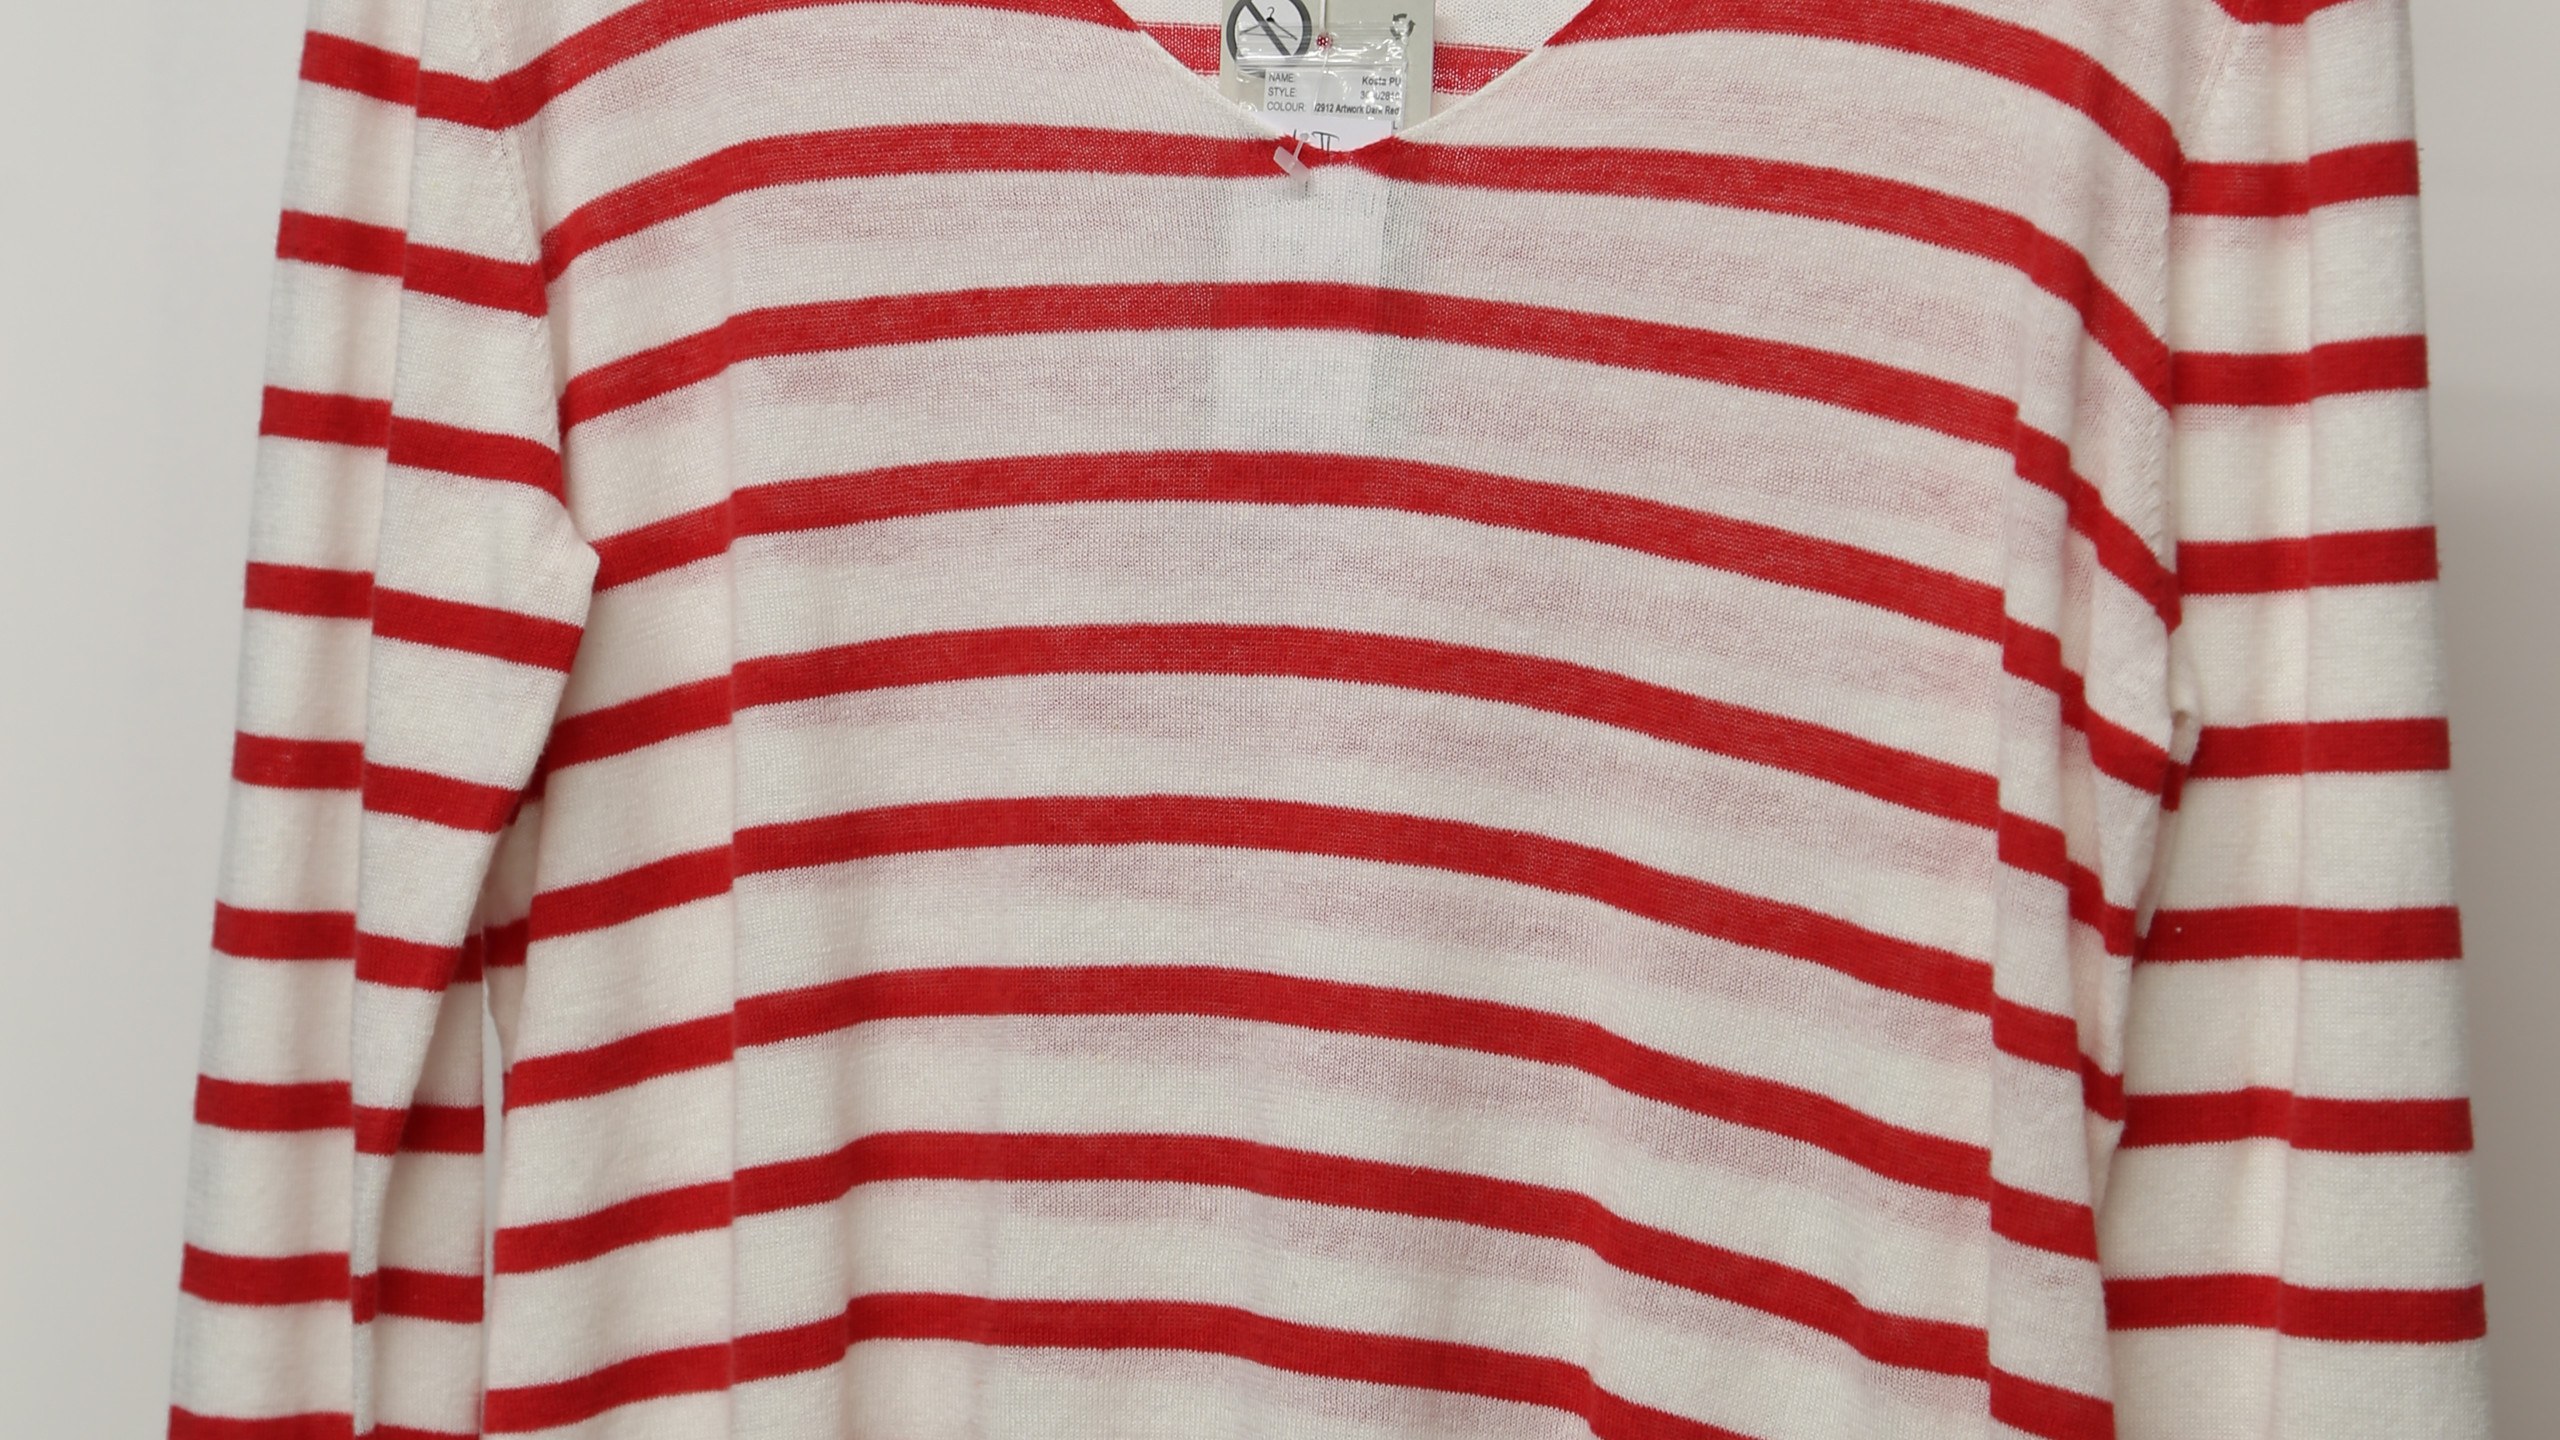 Part Two - red Breton striped top